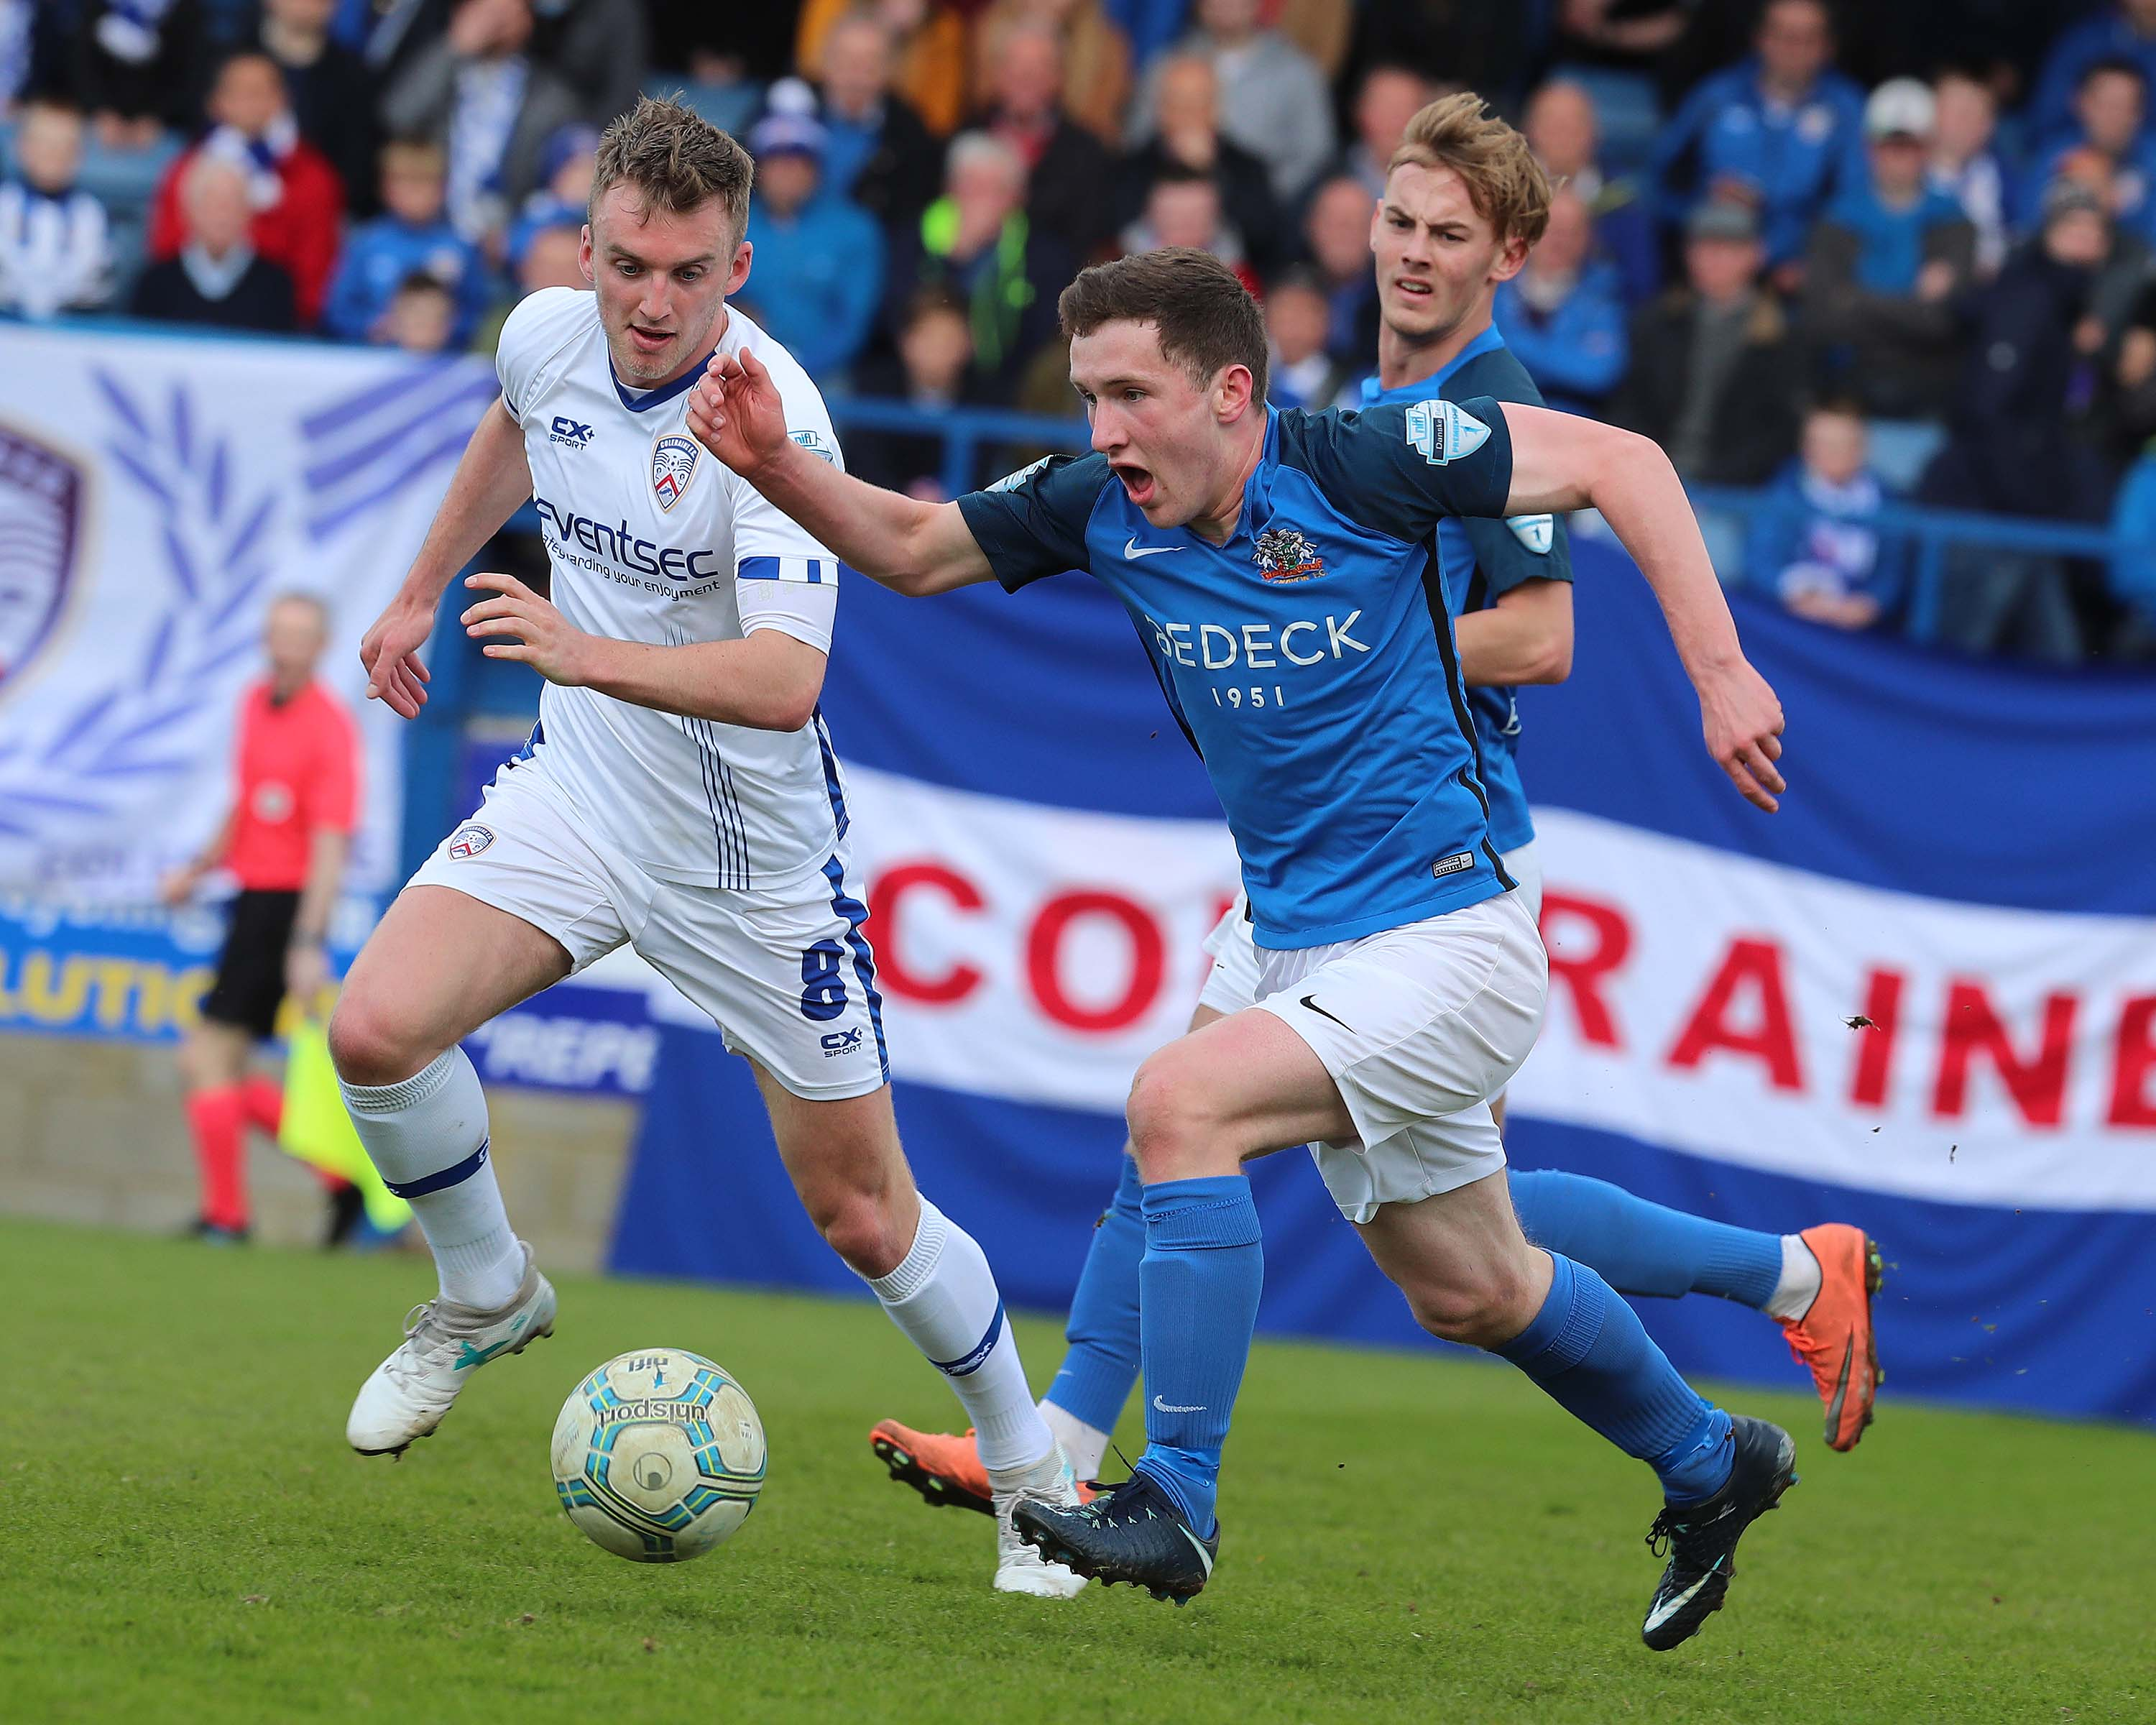 Glenavon Secure Third Place